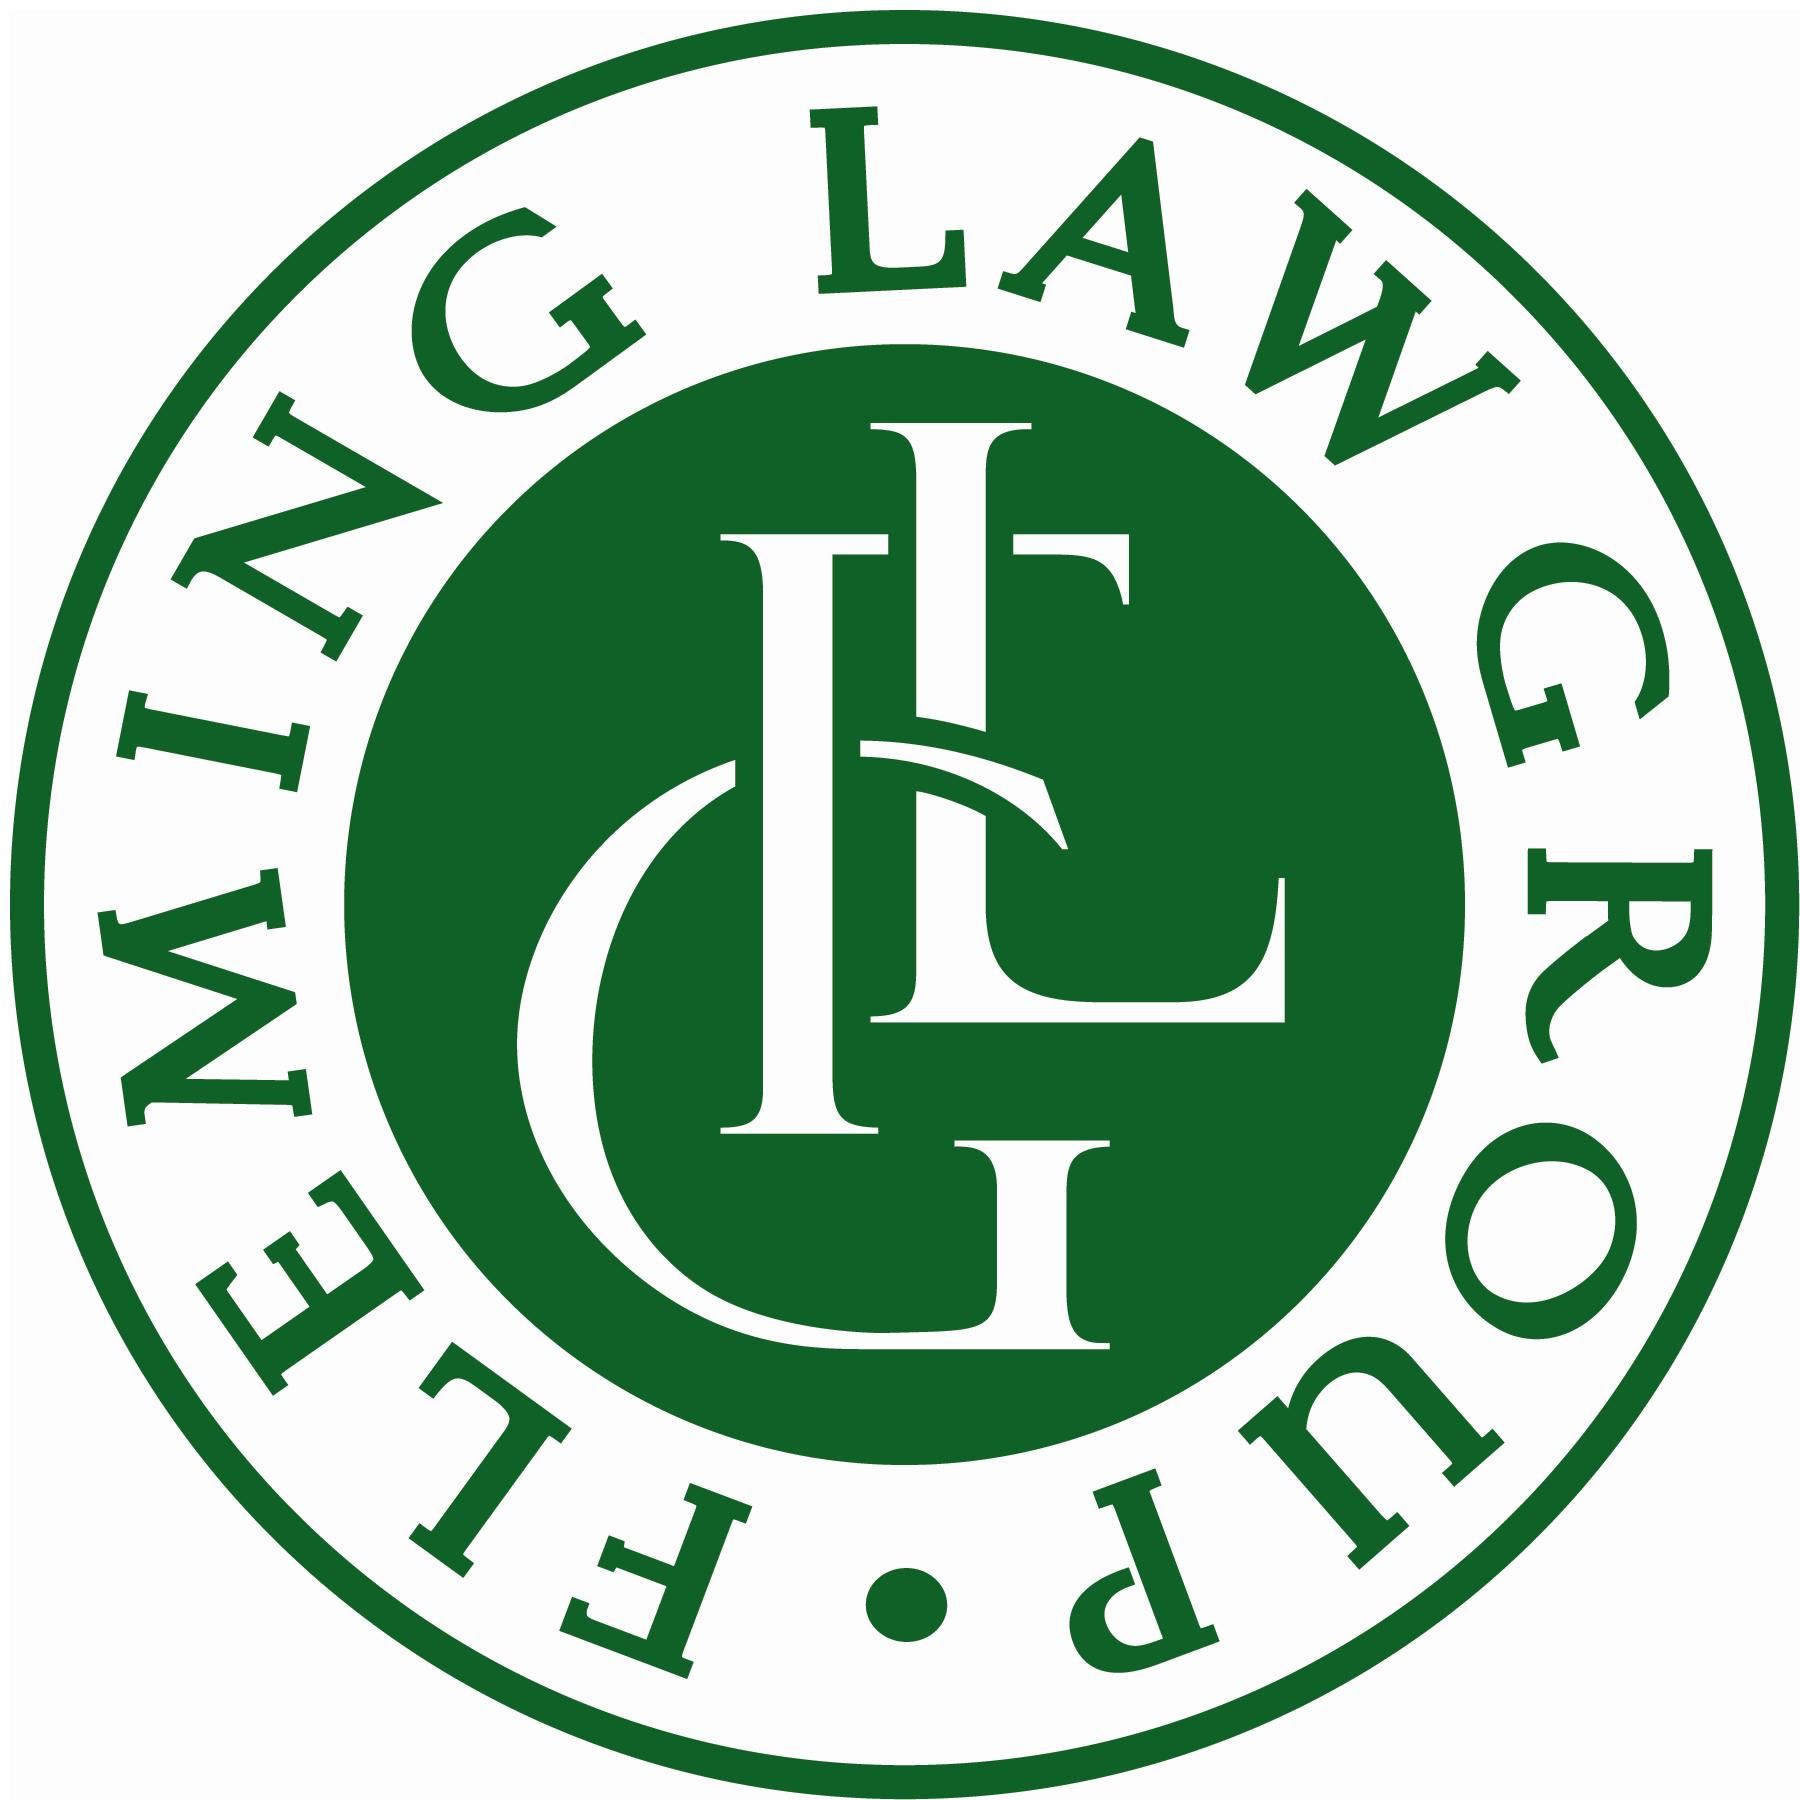 The Fleming Law Group, P.A.